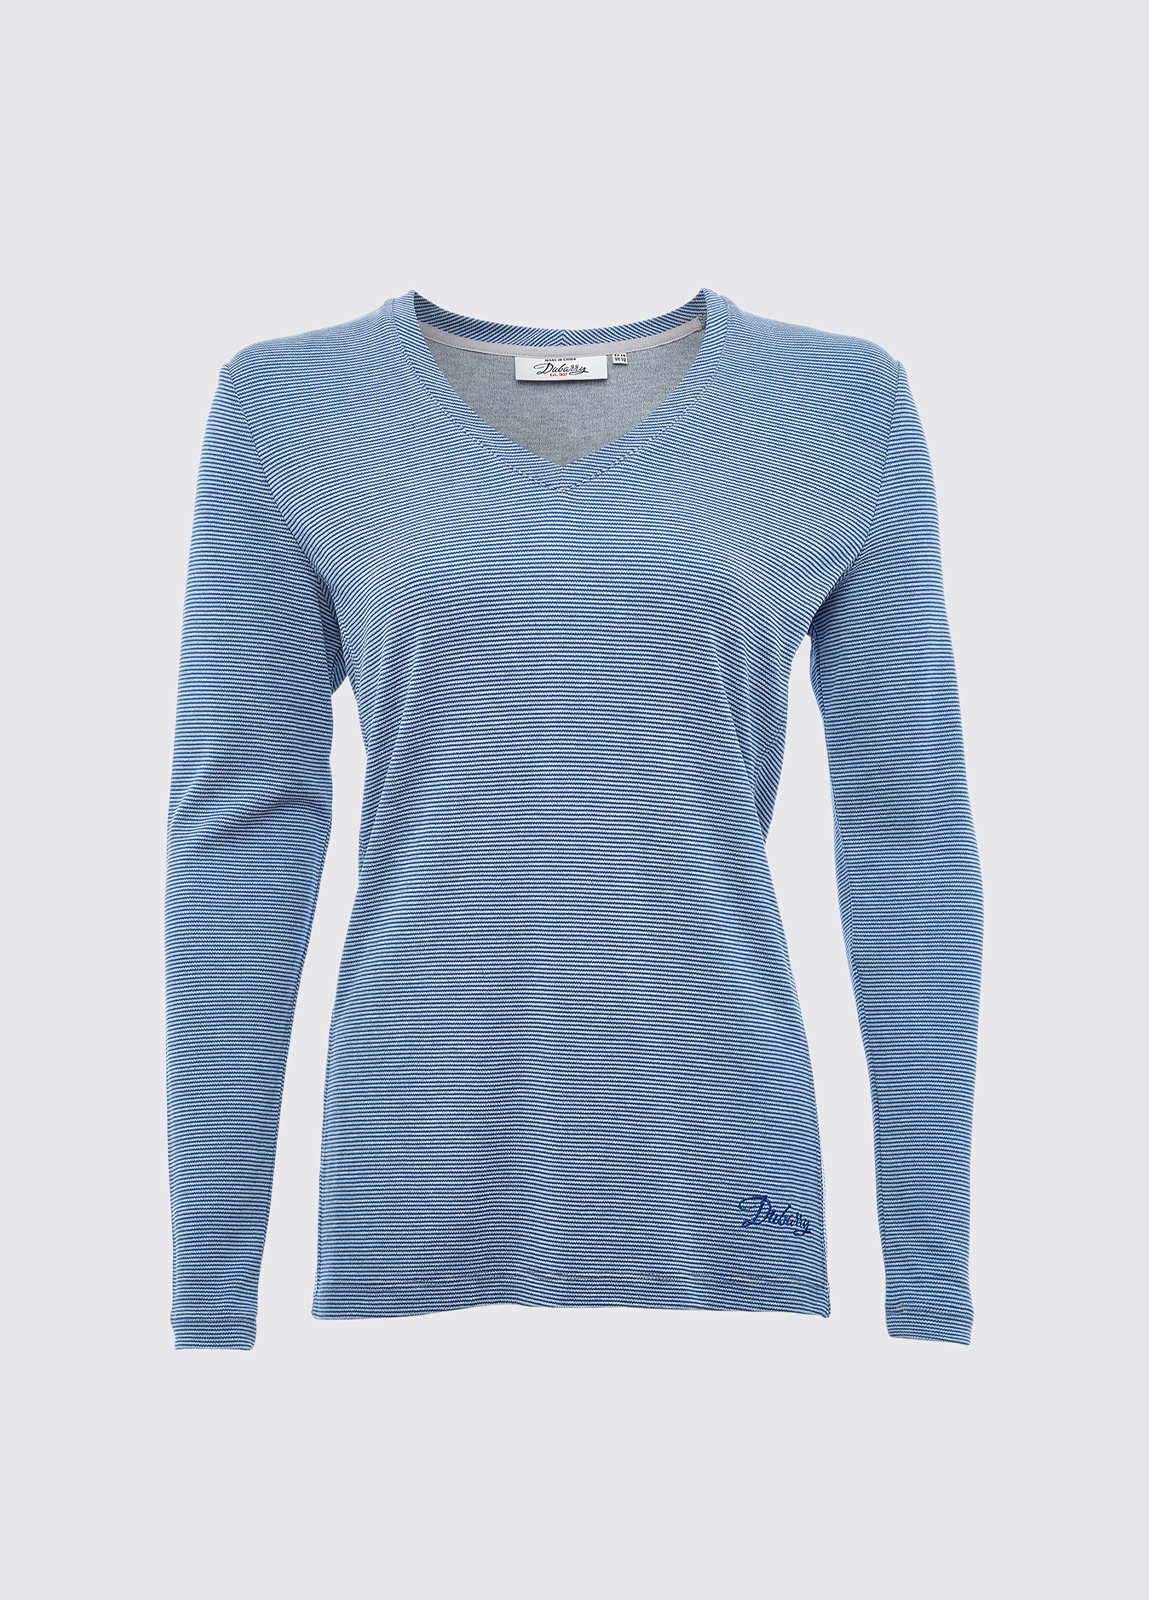 Portumna Long-sleeved Top - Denim